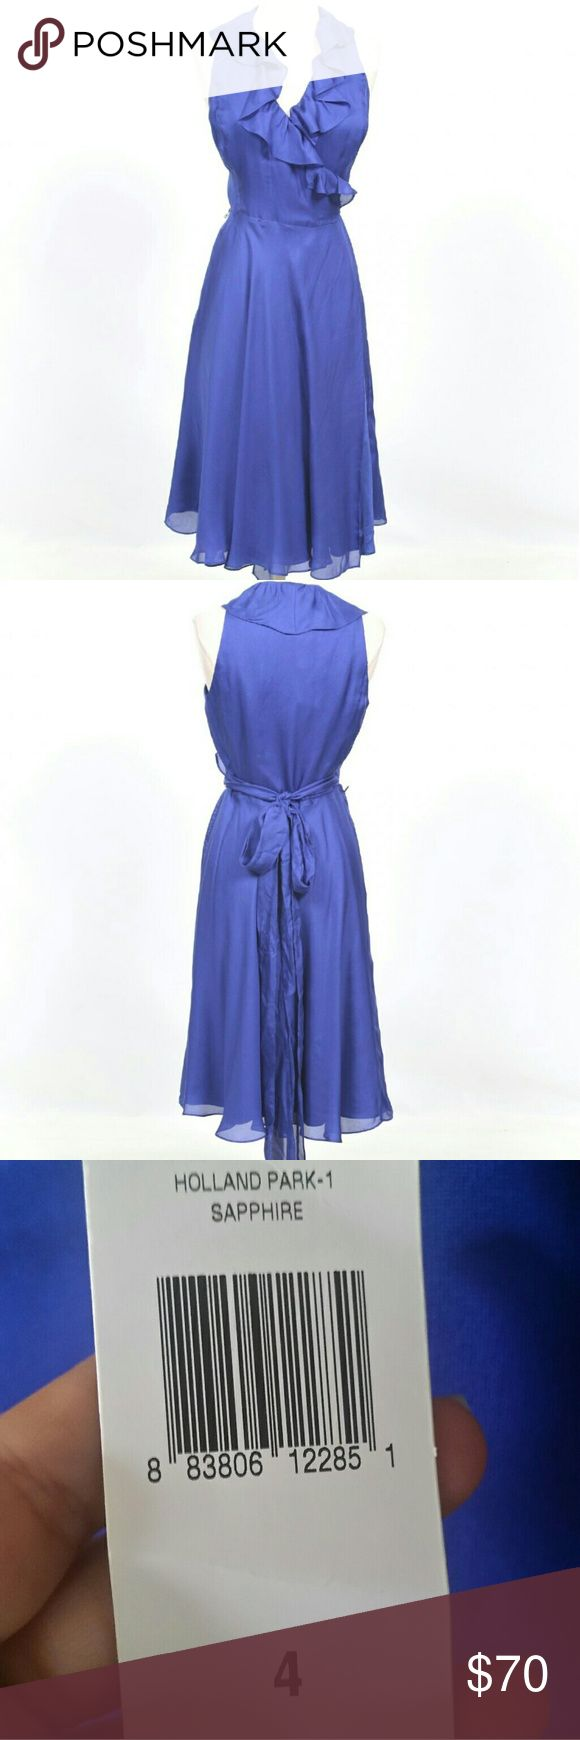 Ralph Lauren Wrap Dress Brand new with tags  Size 4 100% silk Gorgeous purple color  Perfect for a formal event or a date night out Ralph Lauren Dresses Midi